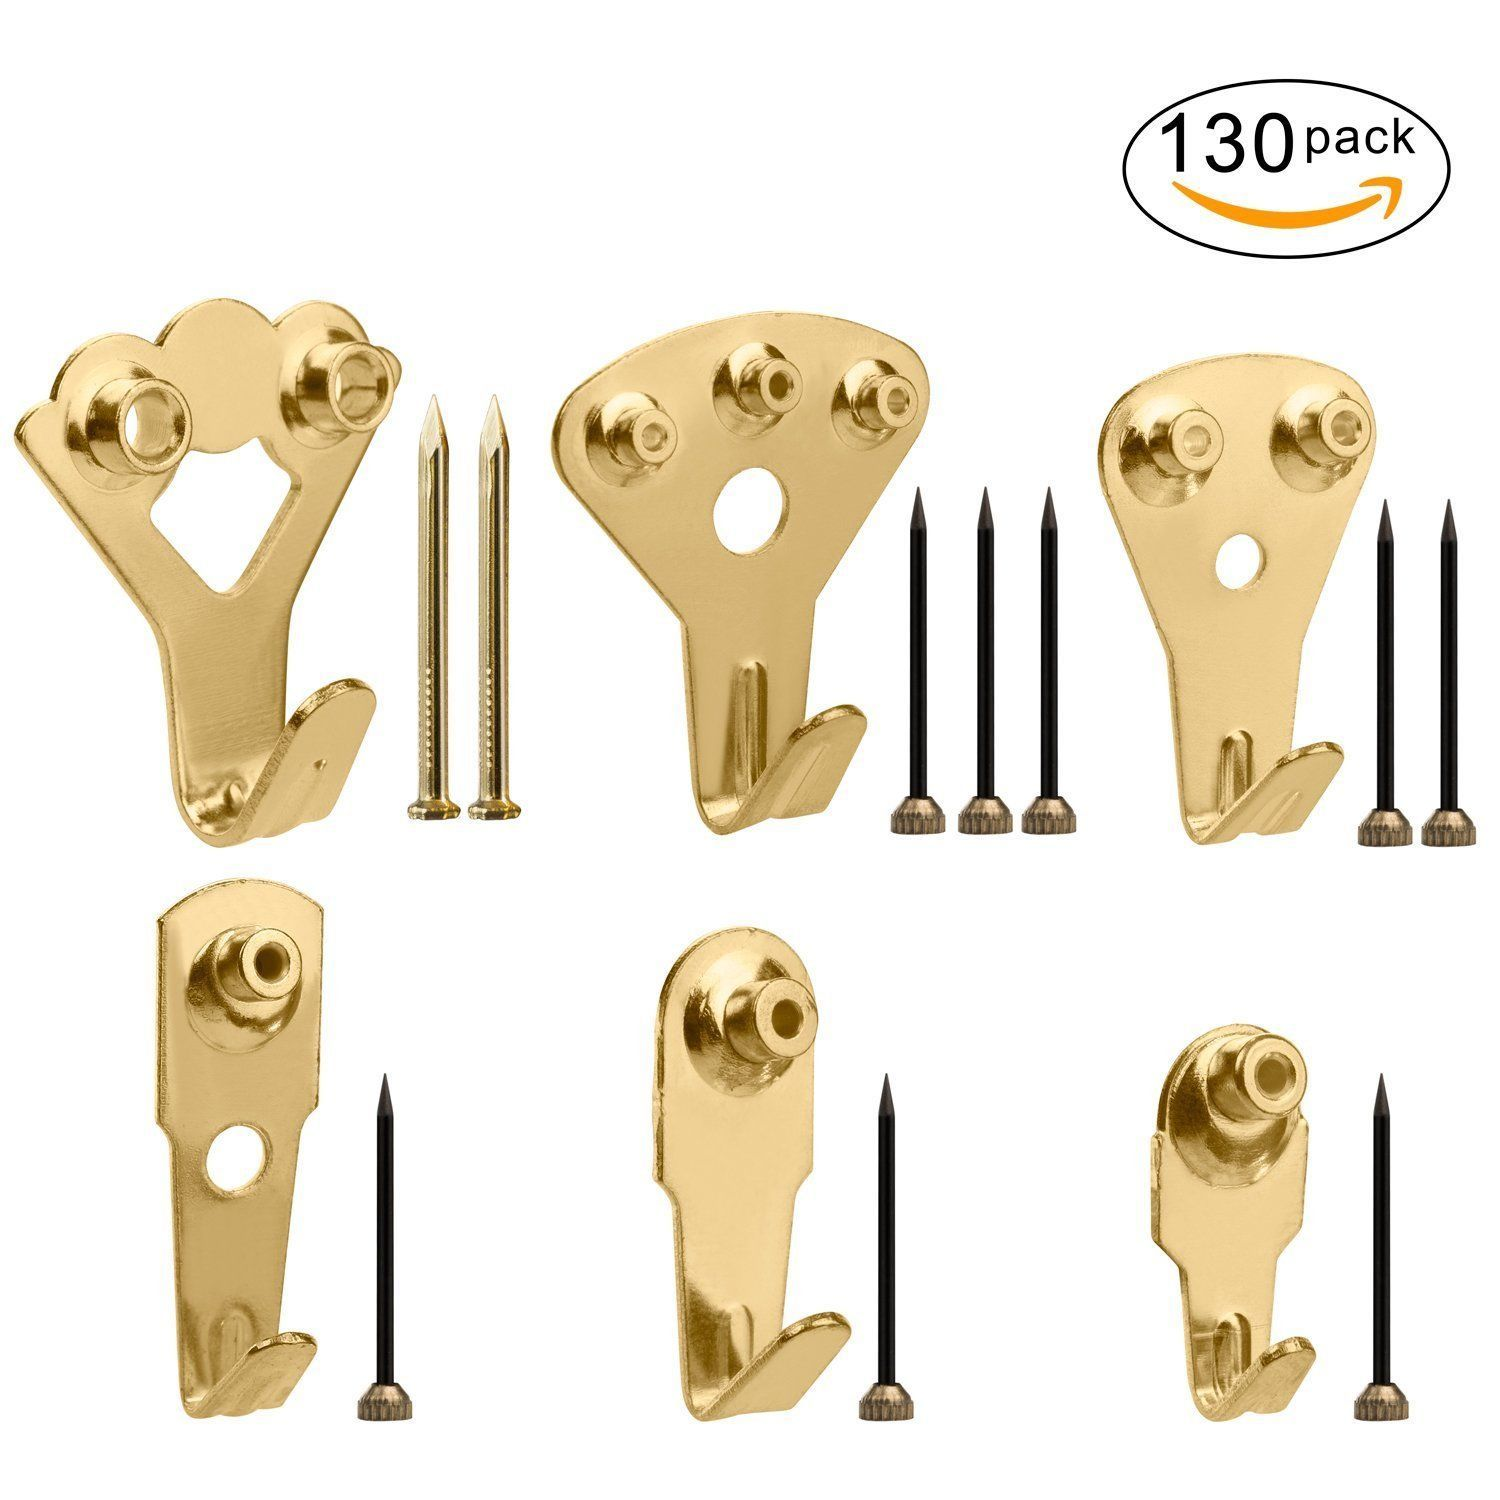 130 Pieces Coat Hooks Wall Mounted Robe and 14 similar items